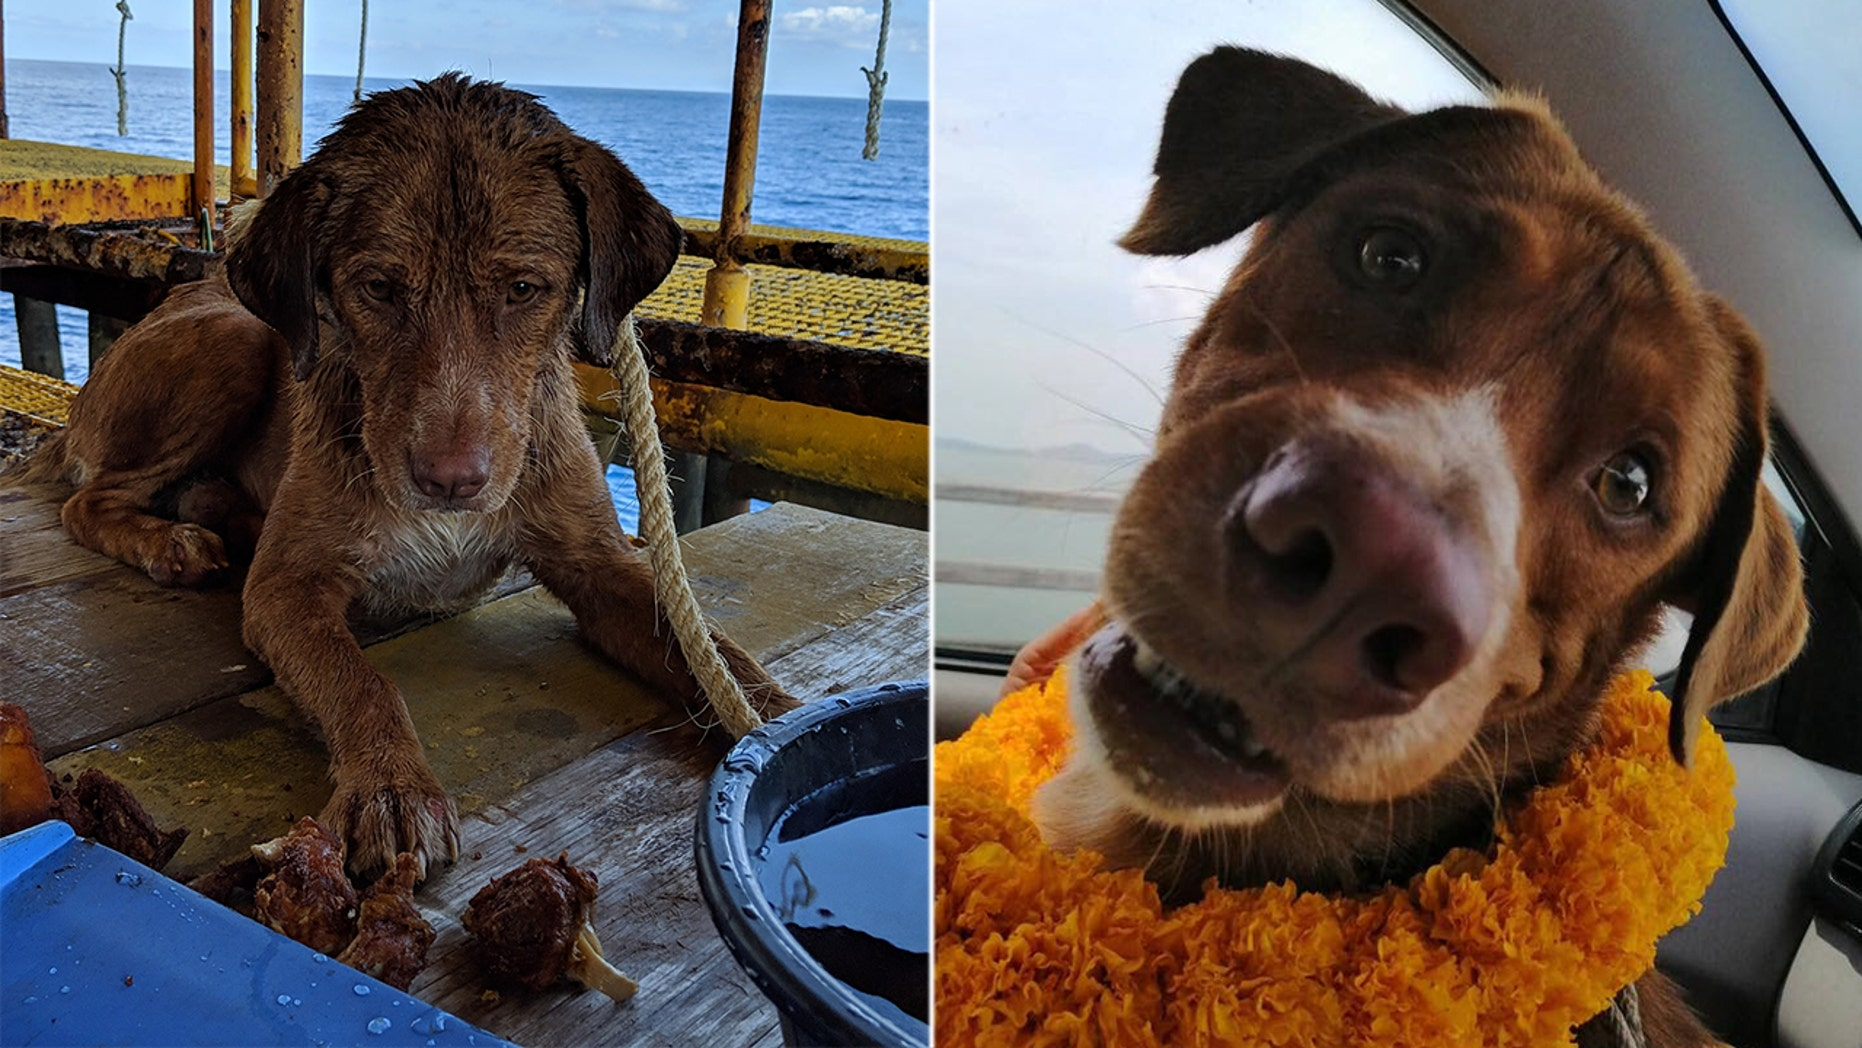 """Boonrod"" was rescued by workers on an oil rig after she was spotted paddling some 130 miles from shore on Friday."